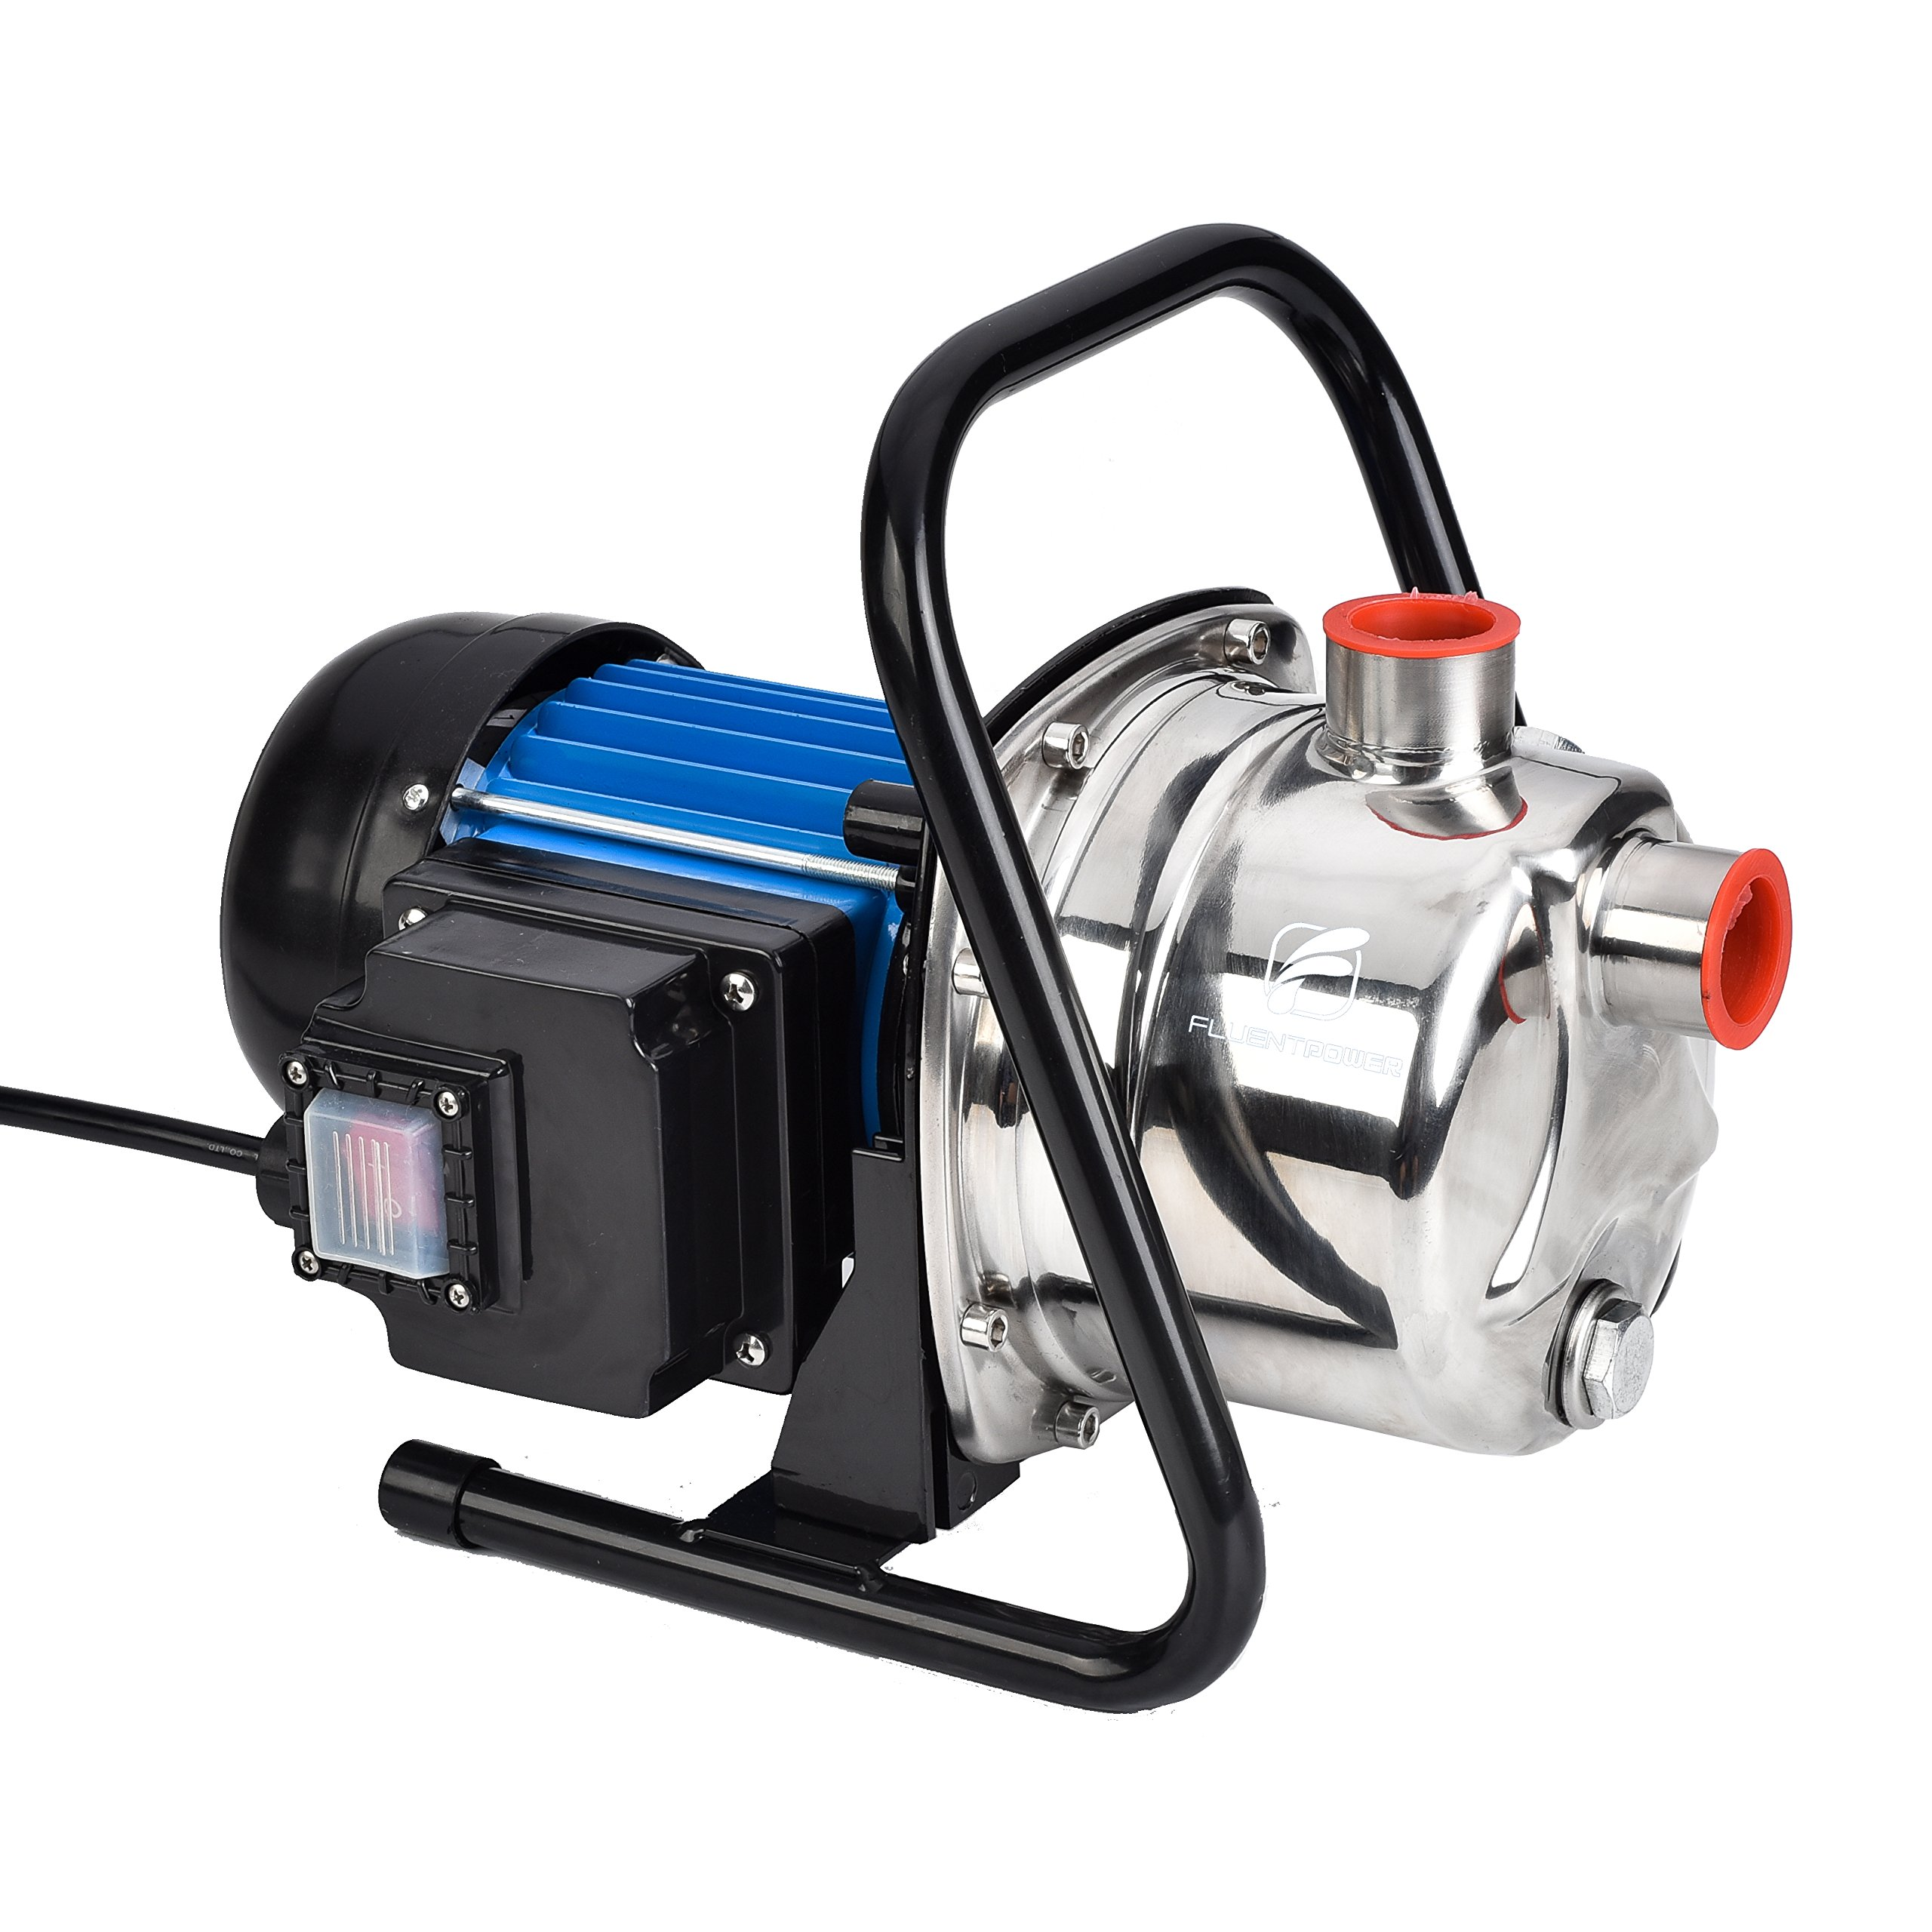 FLUENT POWER 1 HP Portable Stainless Steel Lawn Sprinkling Pump for Garden Irrigation and Pressure booster